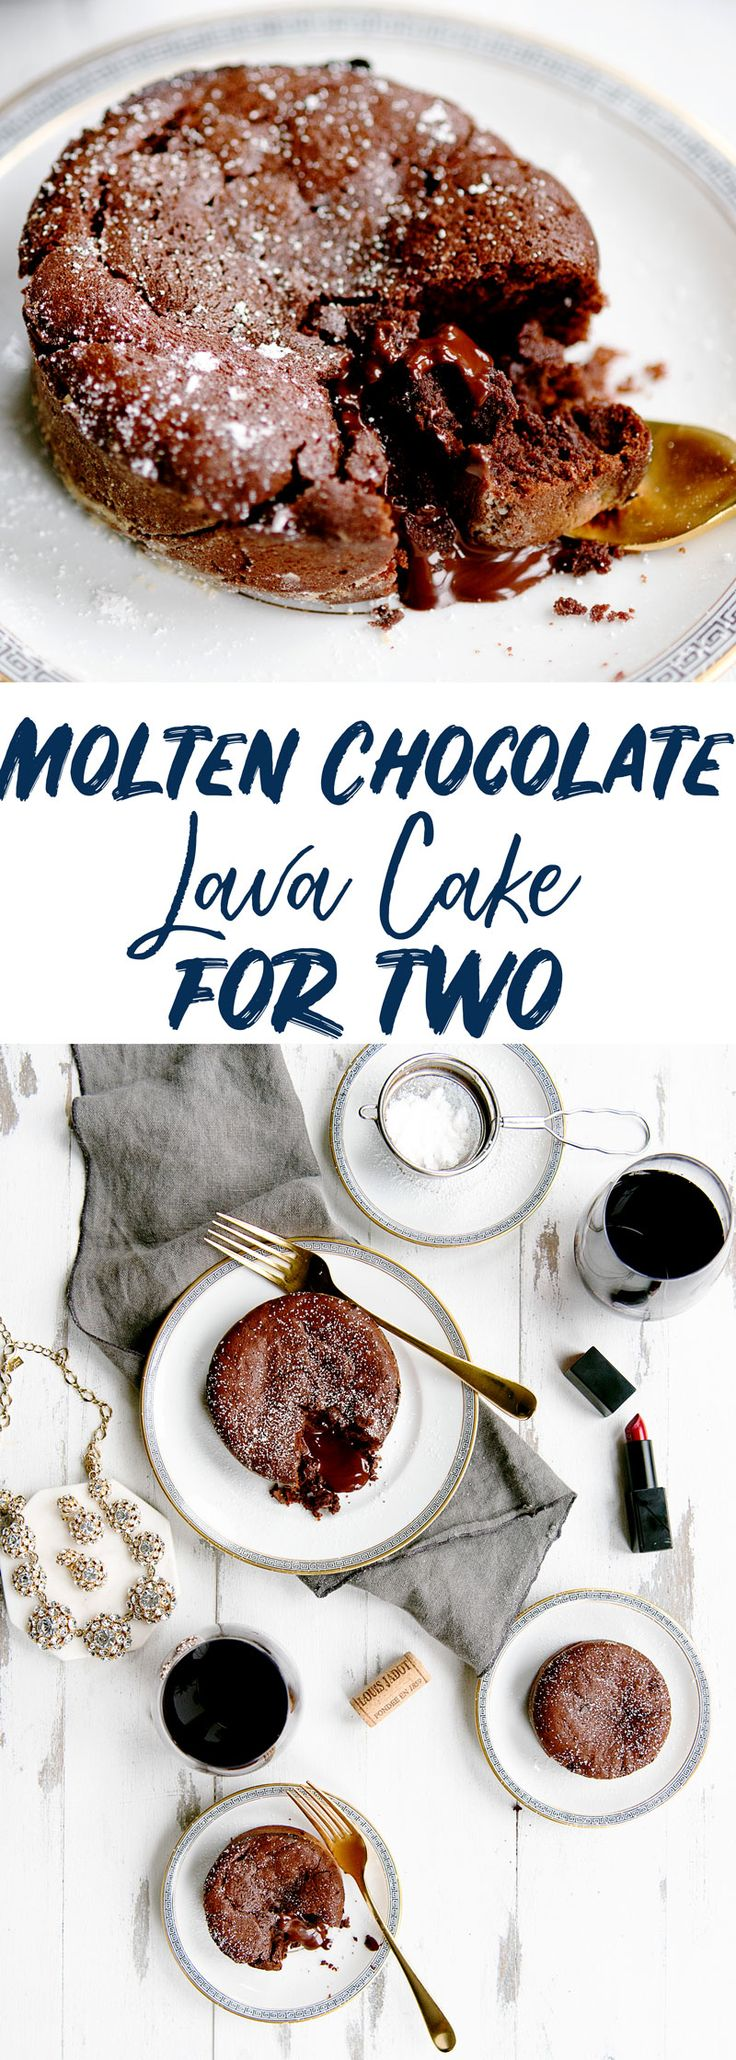 Molten Chocolate Lava Cake Recipe - Valentine's Day Dessert for Two #valentine #chocolate #lavacake